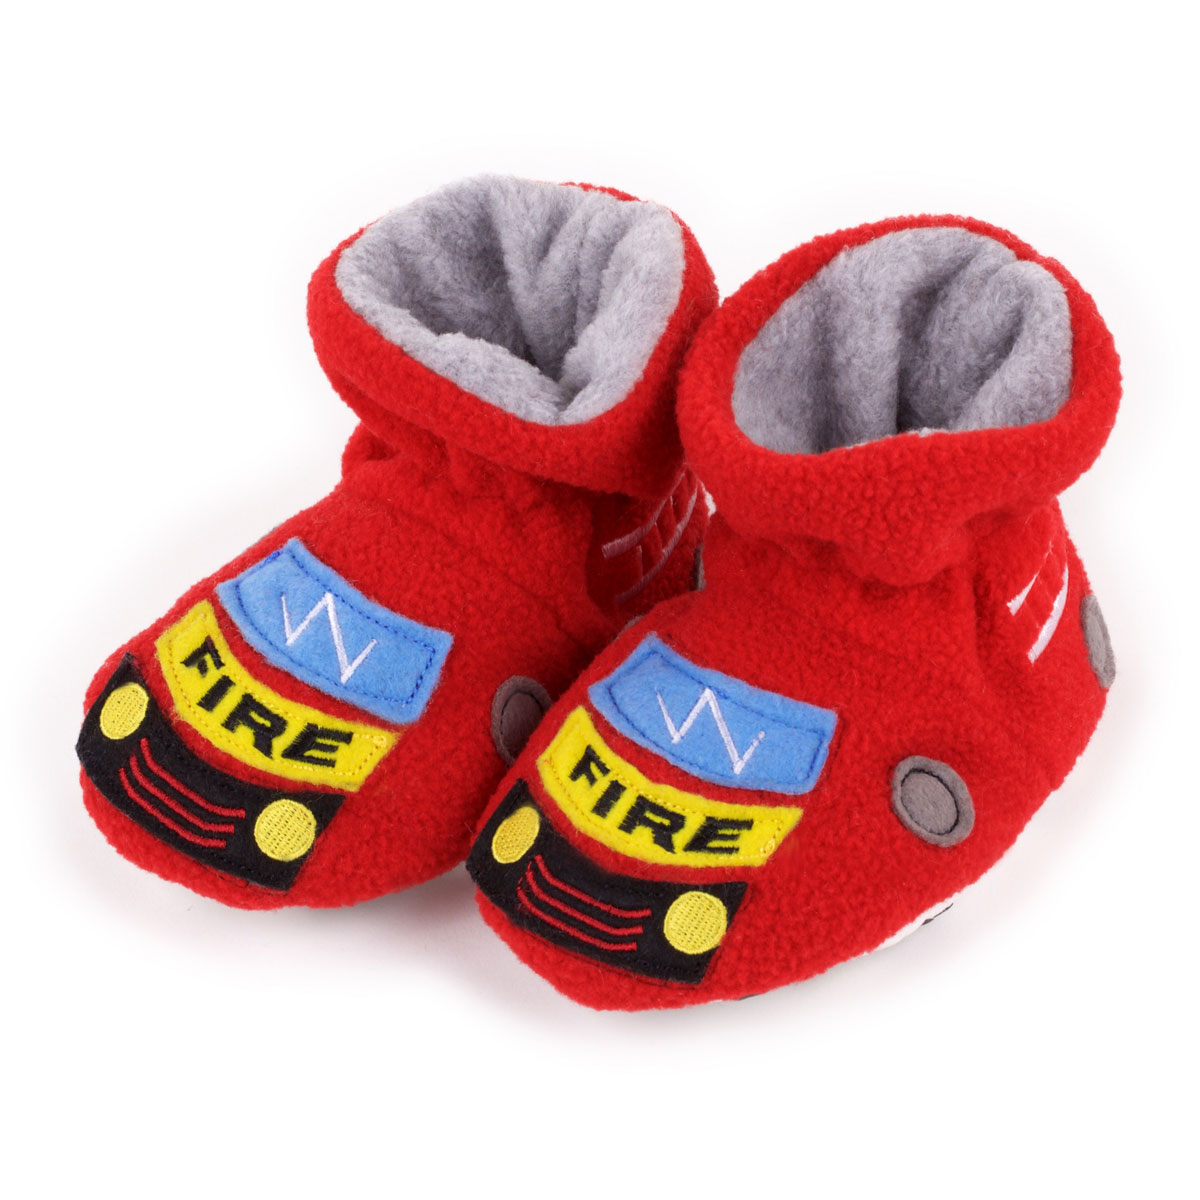 Totes Boys Novelty Slippers Totes Isotoner